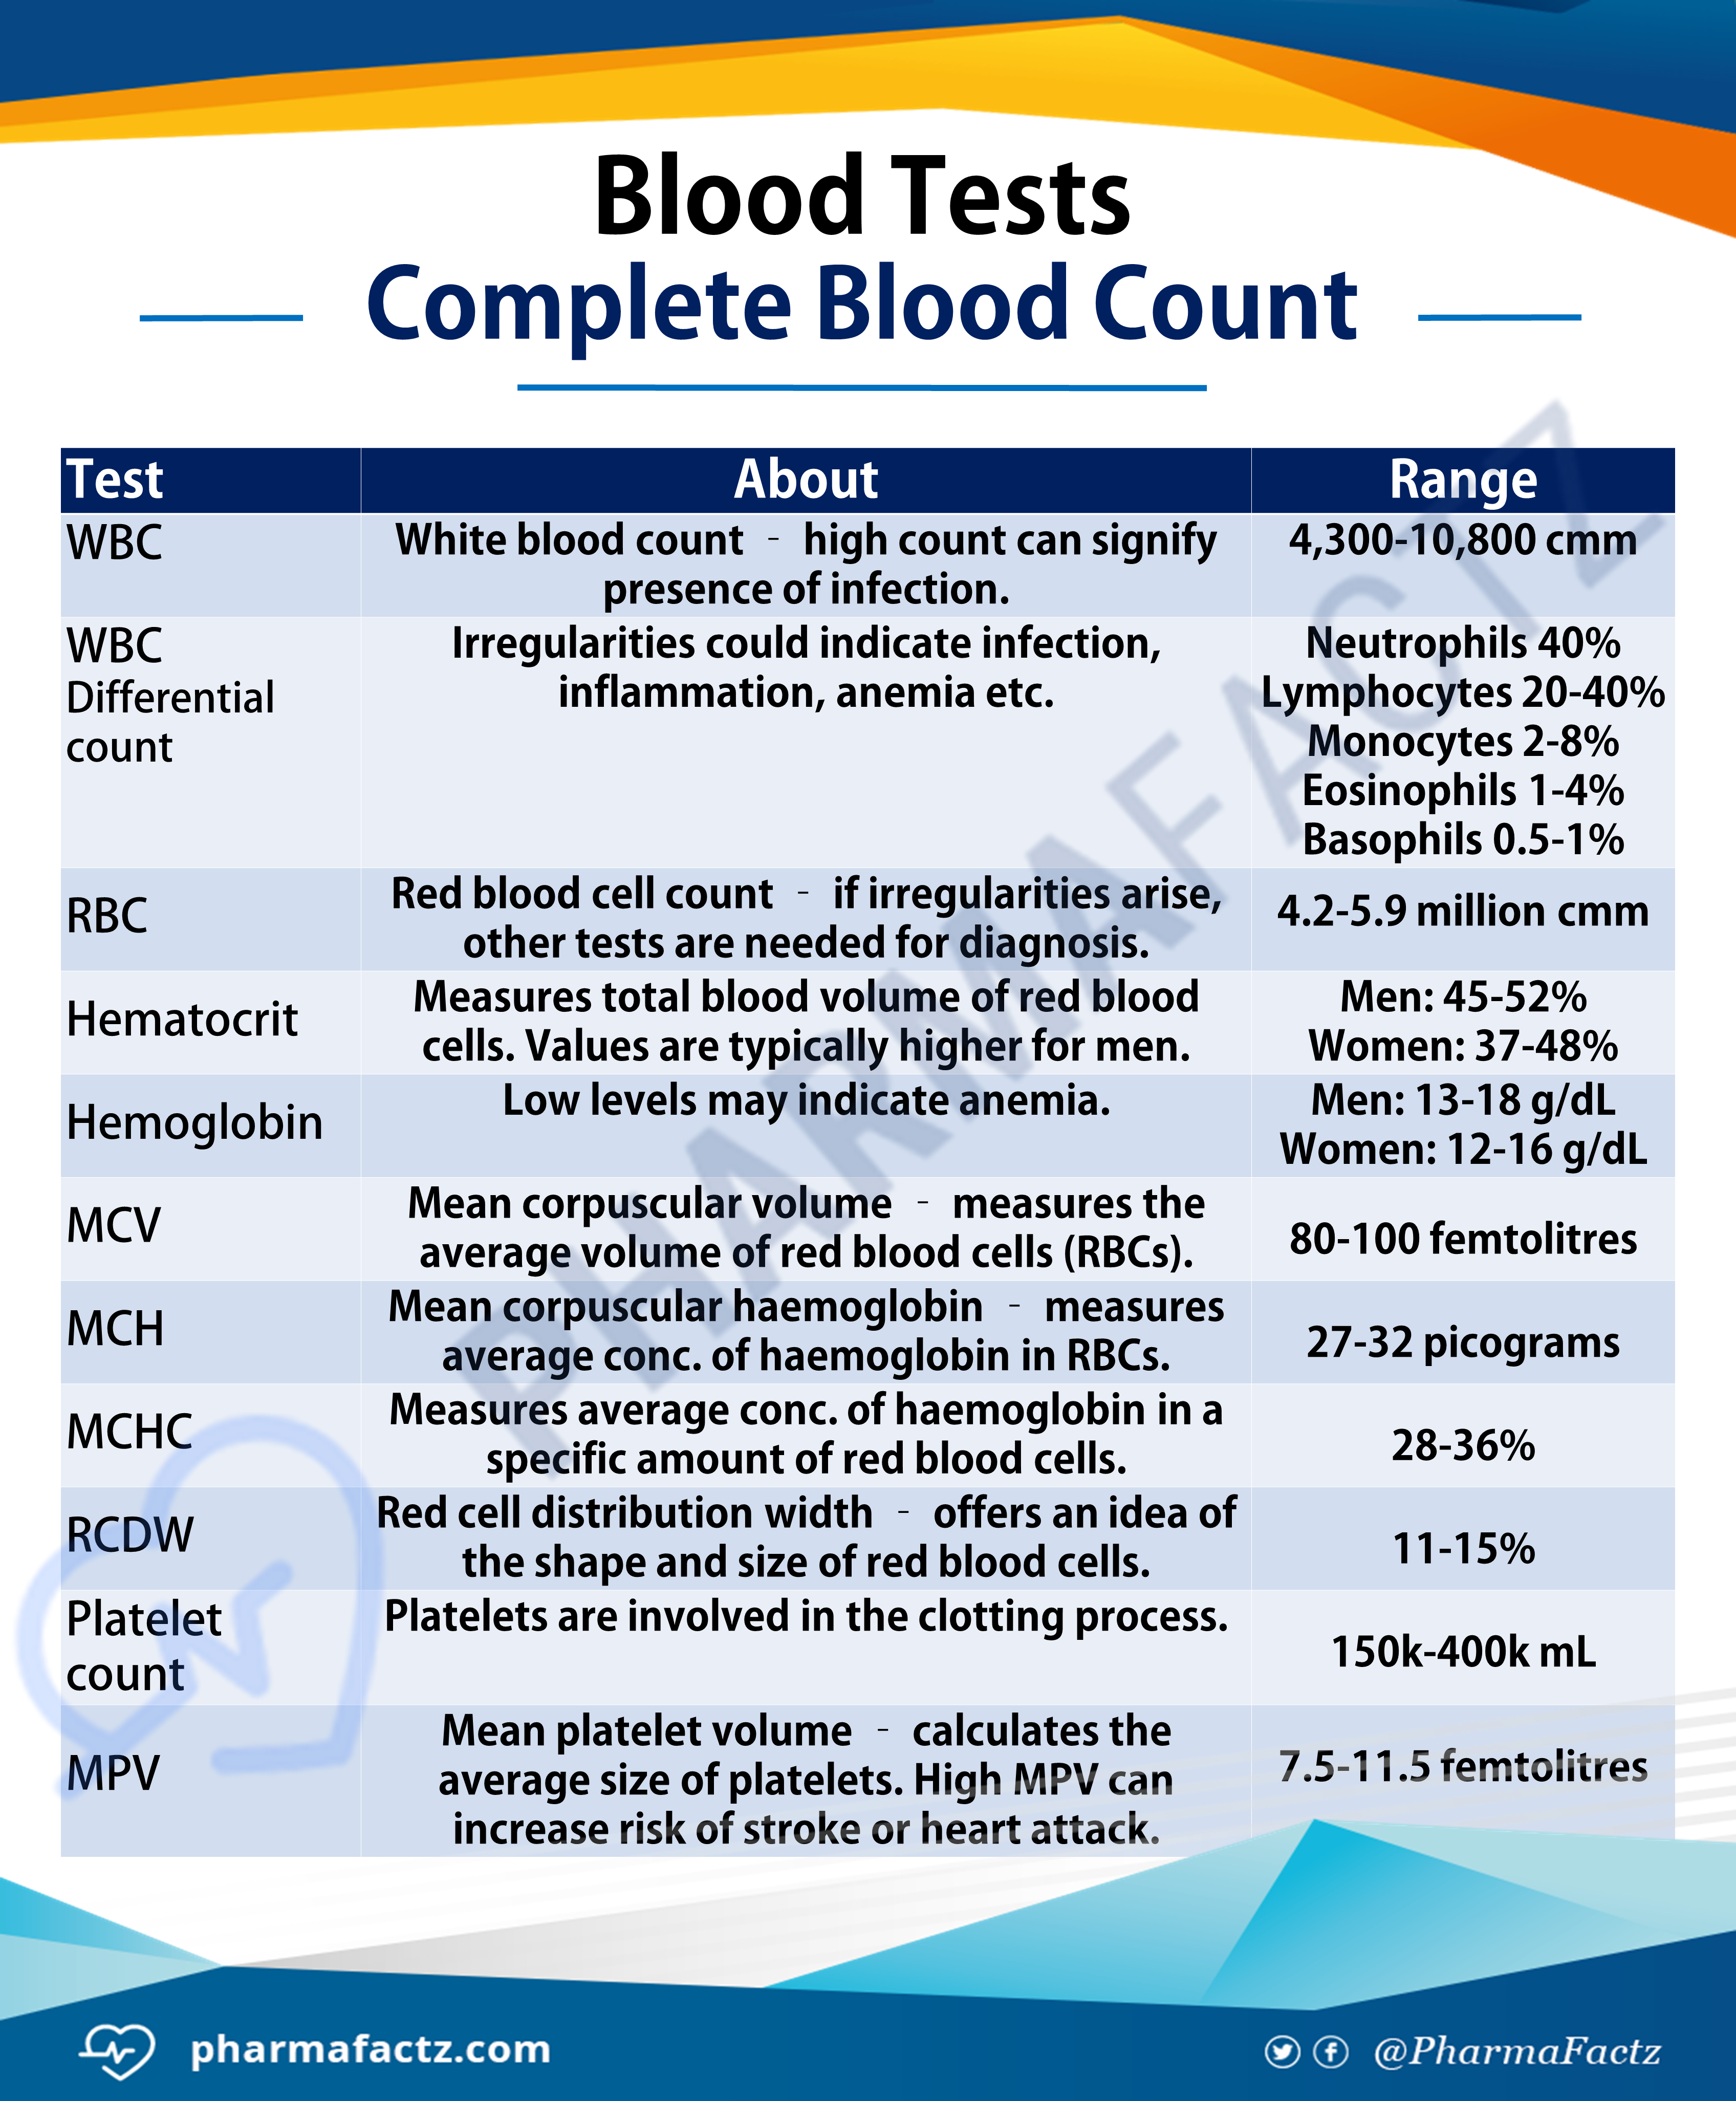 Blood Tests - Complete Blood Count